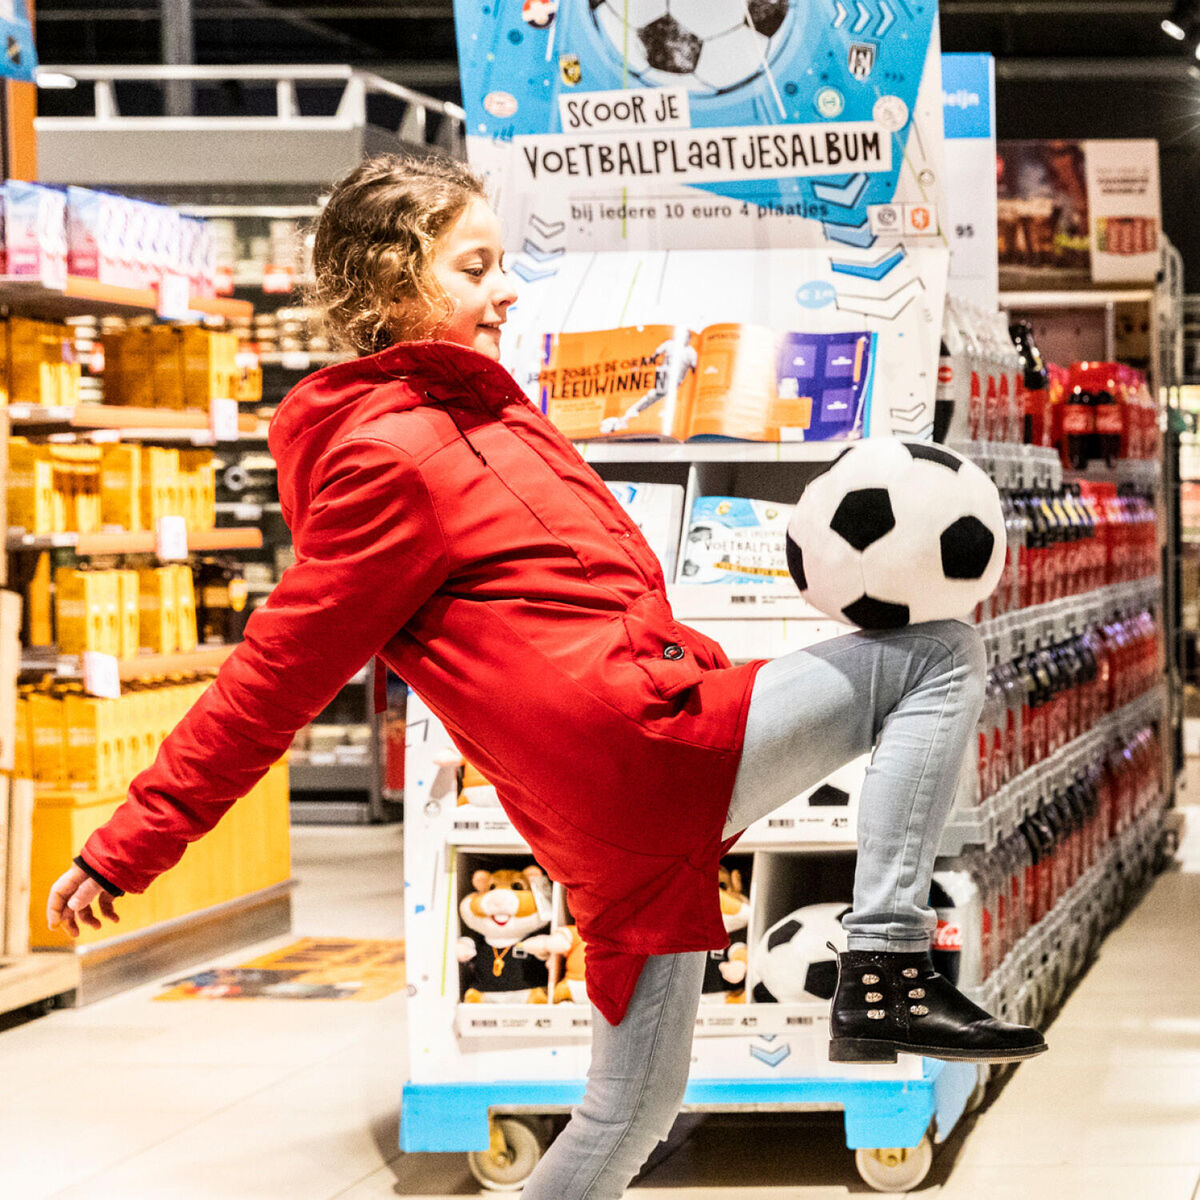 Learn more about activating sports in retail